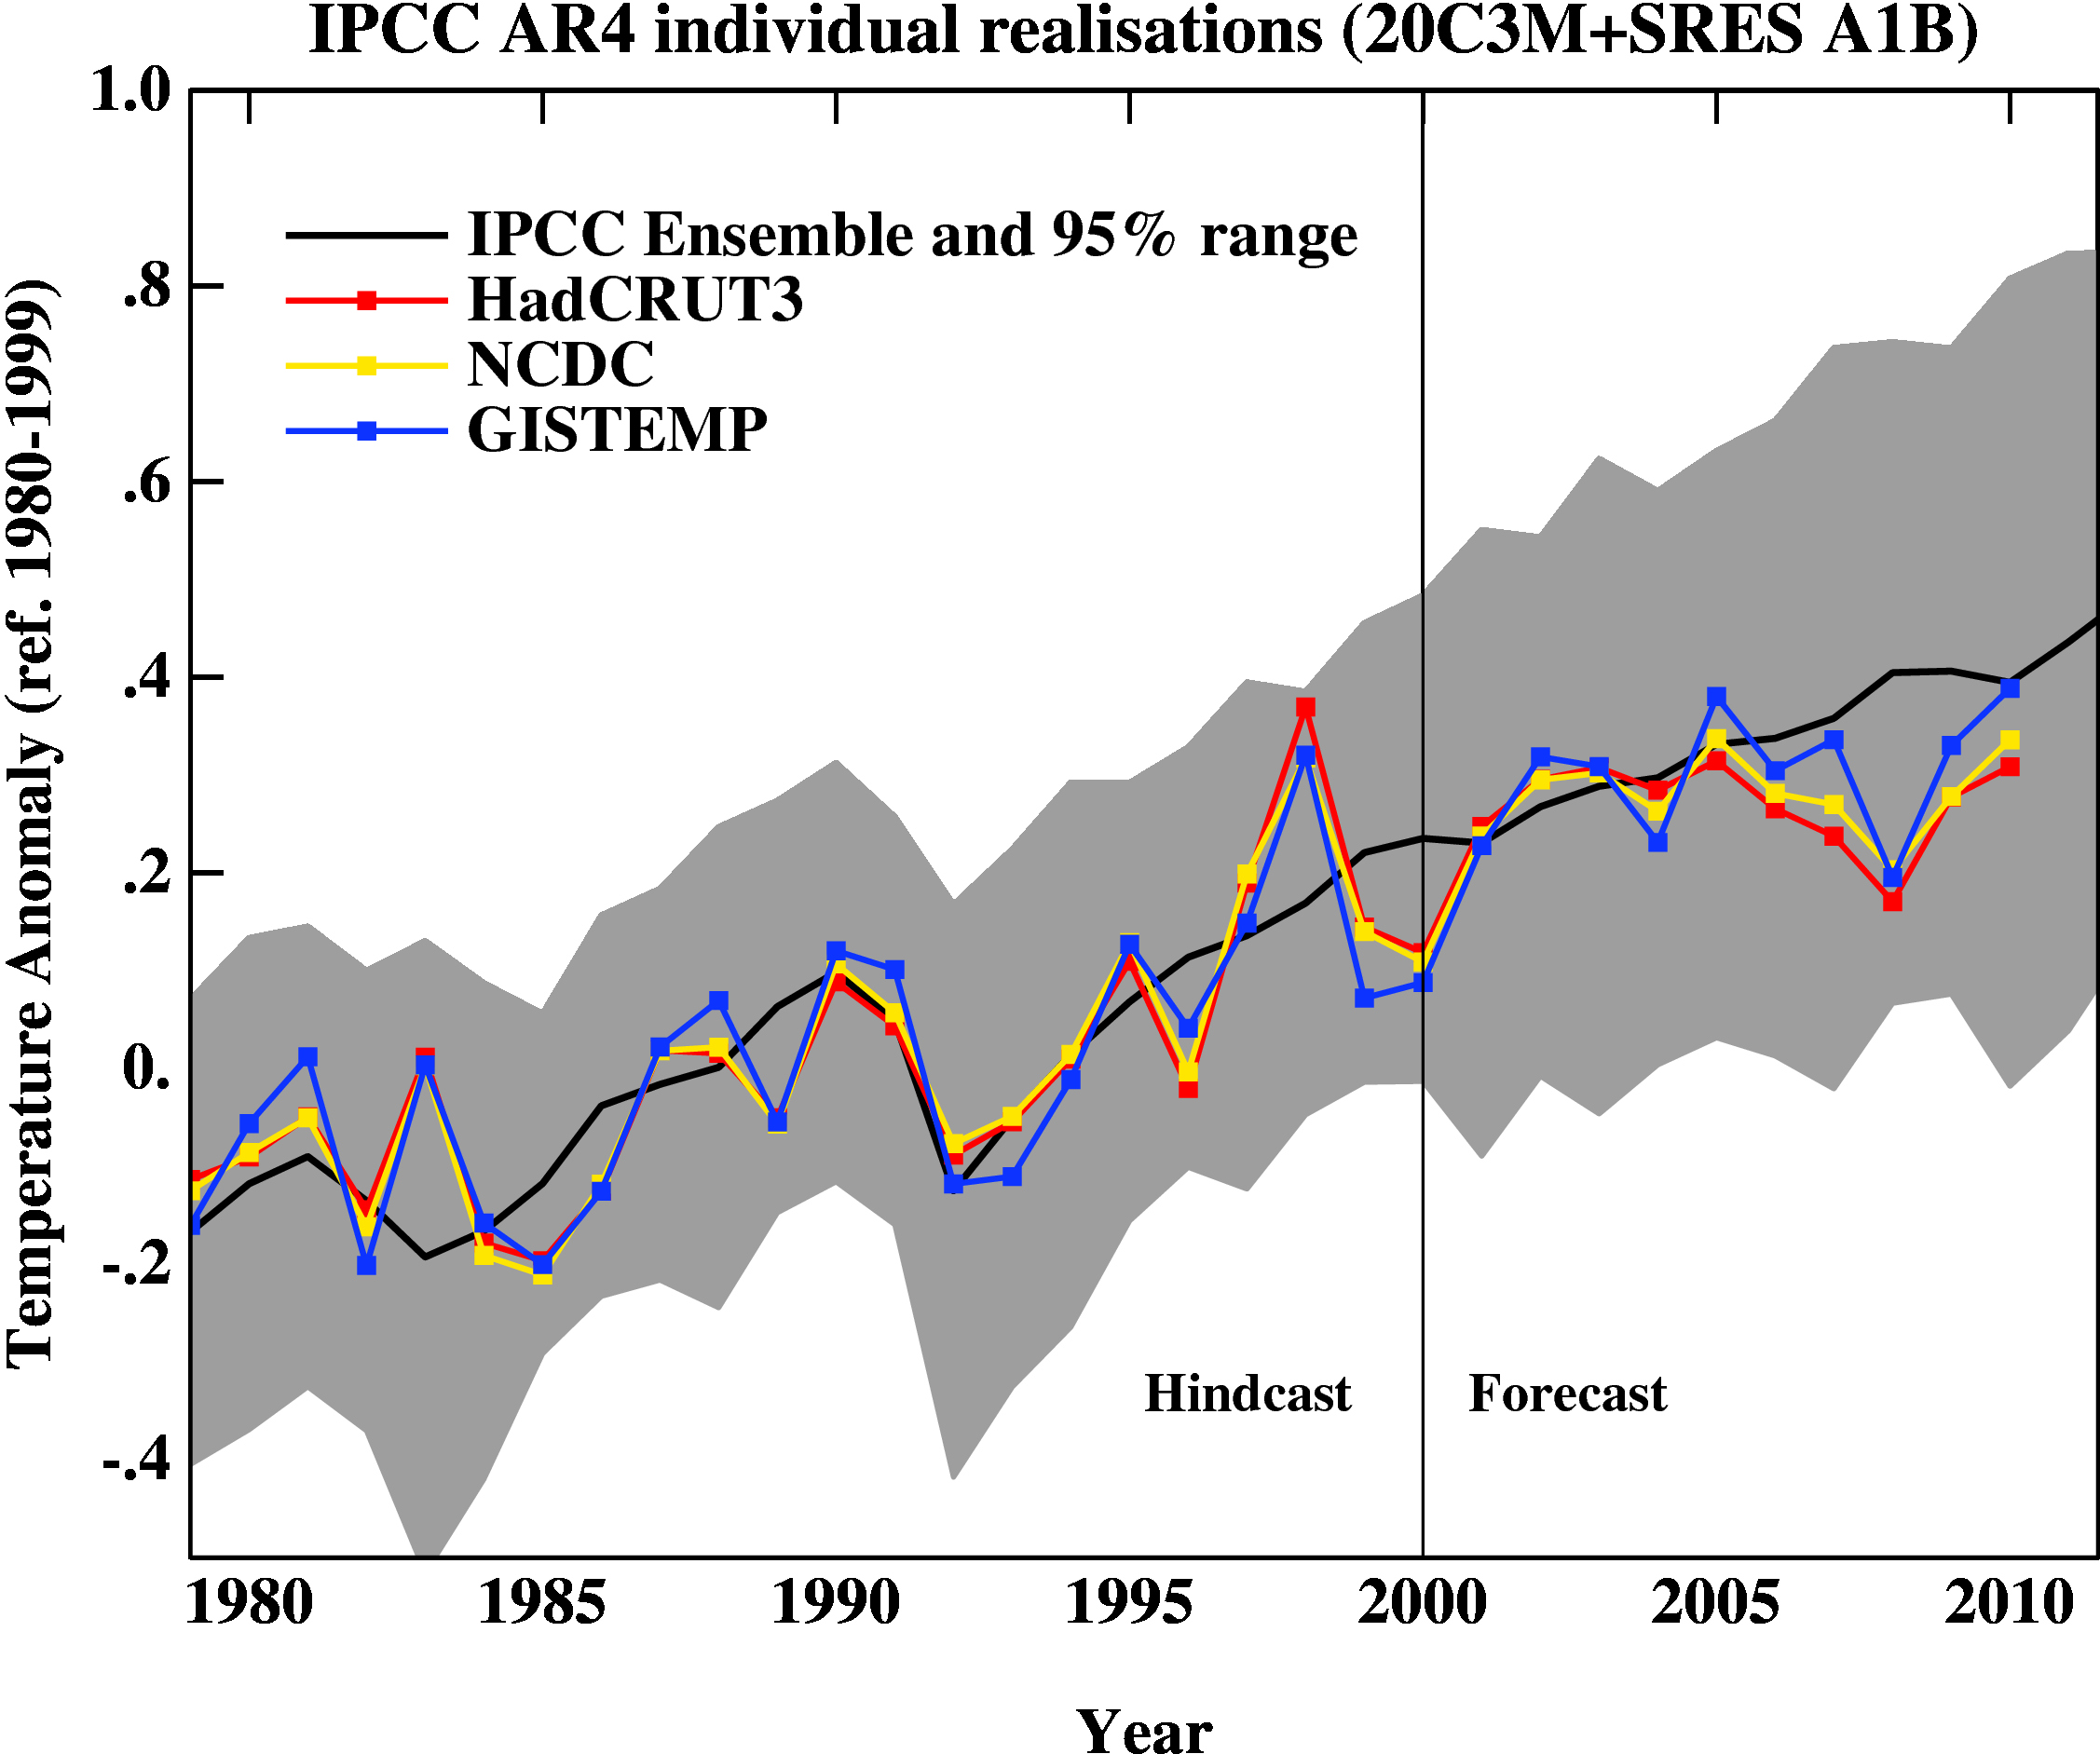 Observed global temperatures since 1980 compared to IPCC AR4 model projections